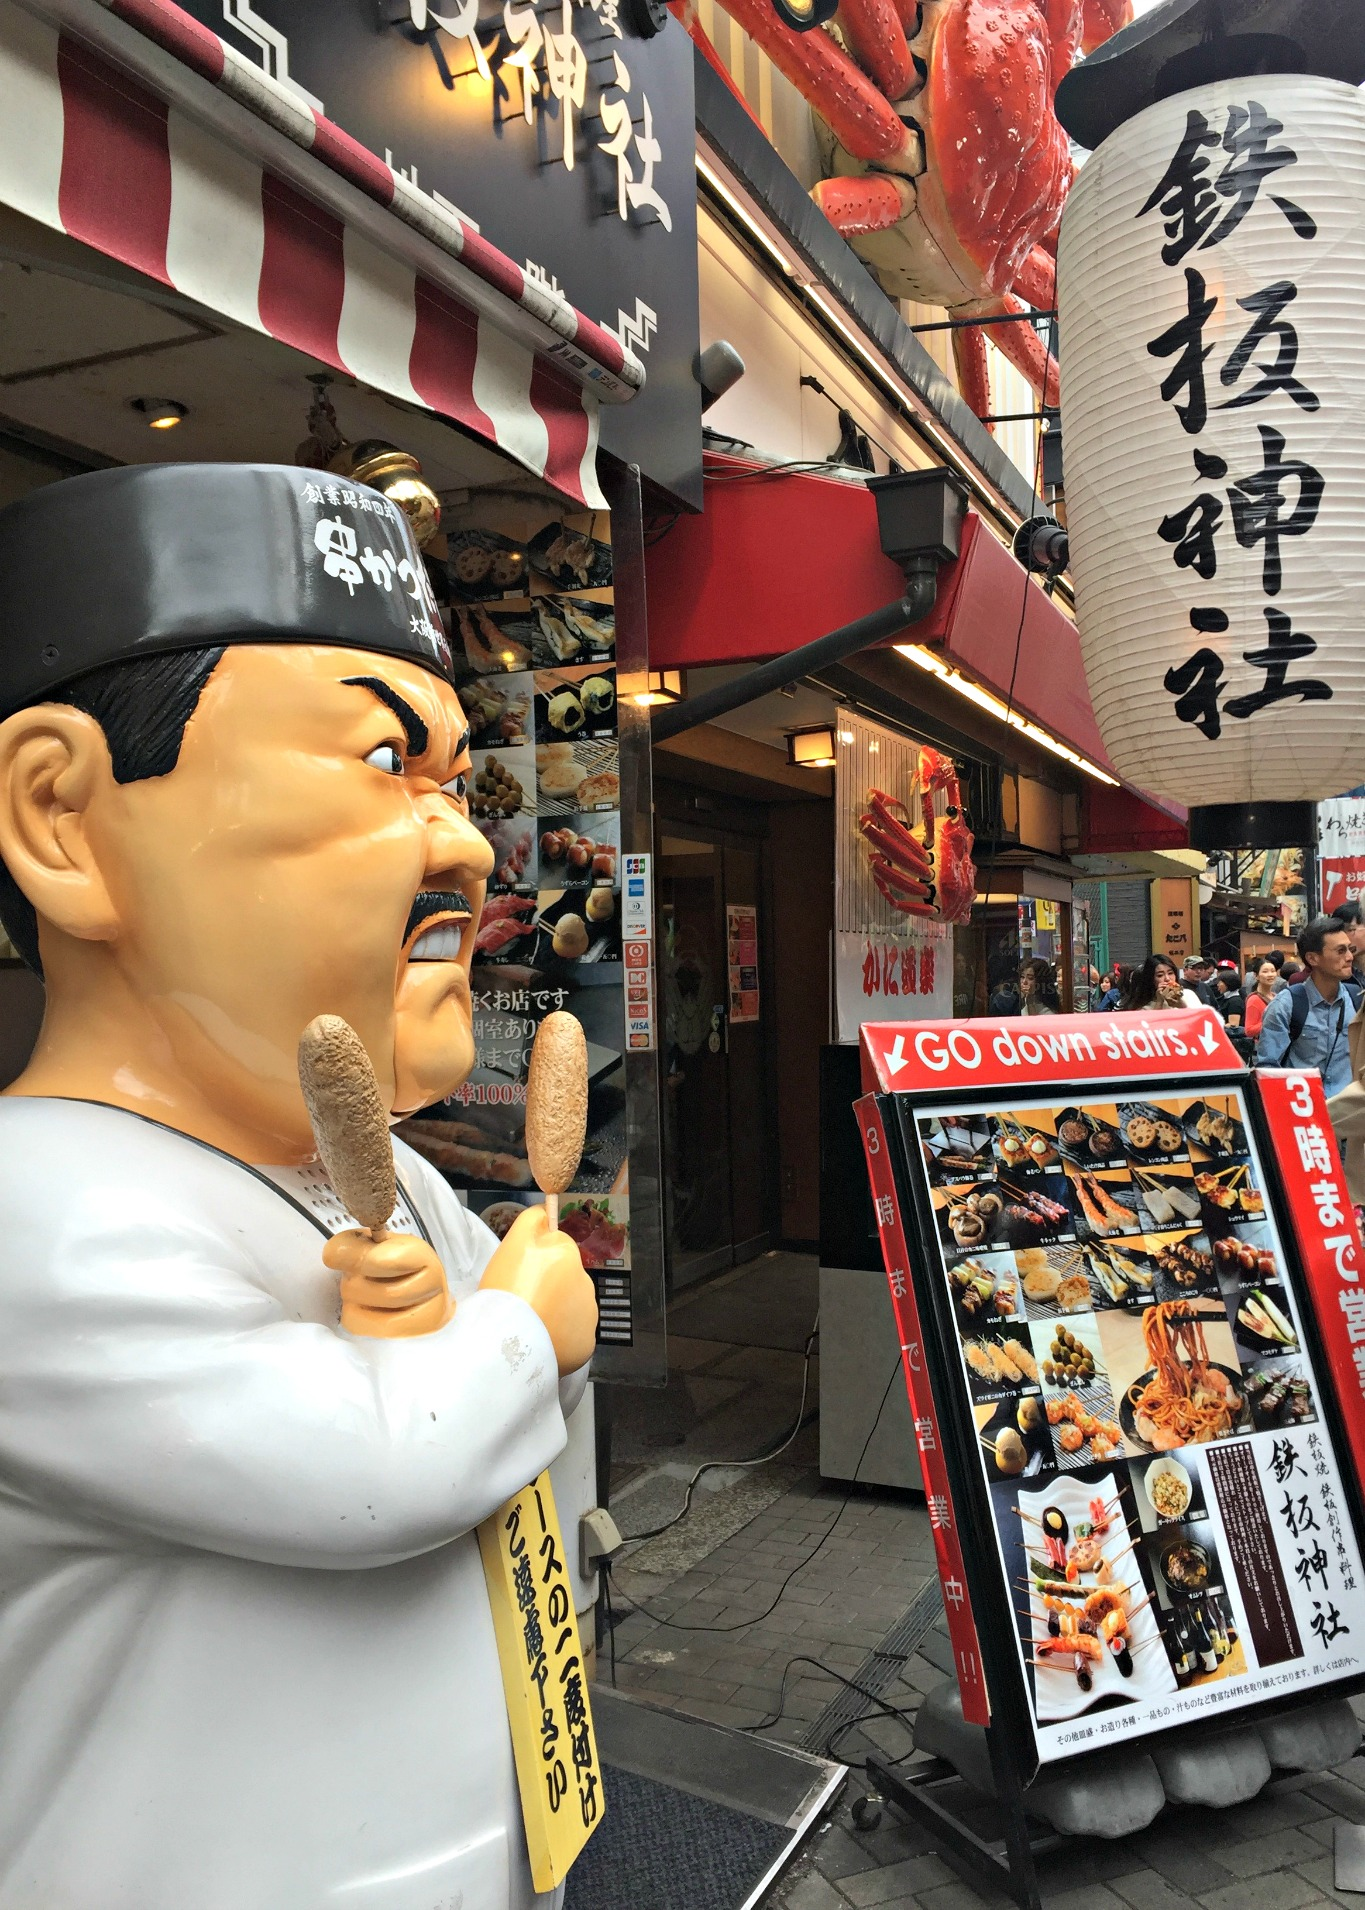 One of the many restaurants in Dotonburi. Photo by Mitsuhiro Munakata